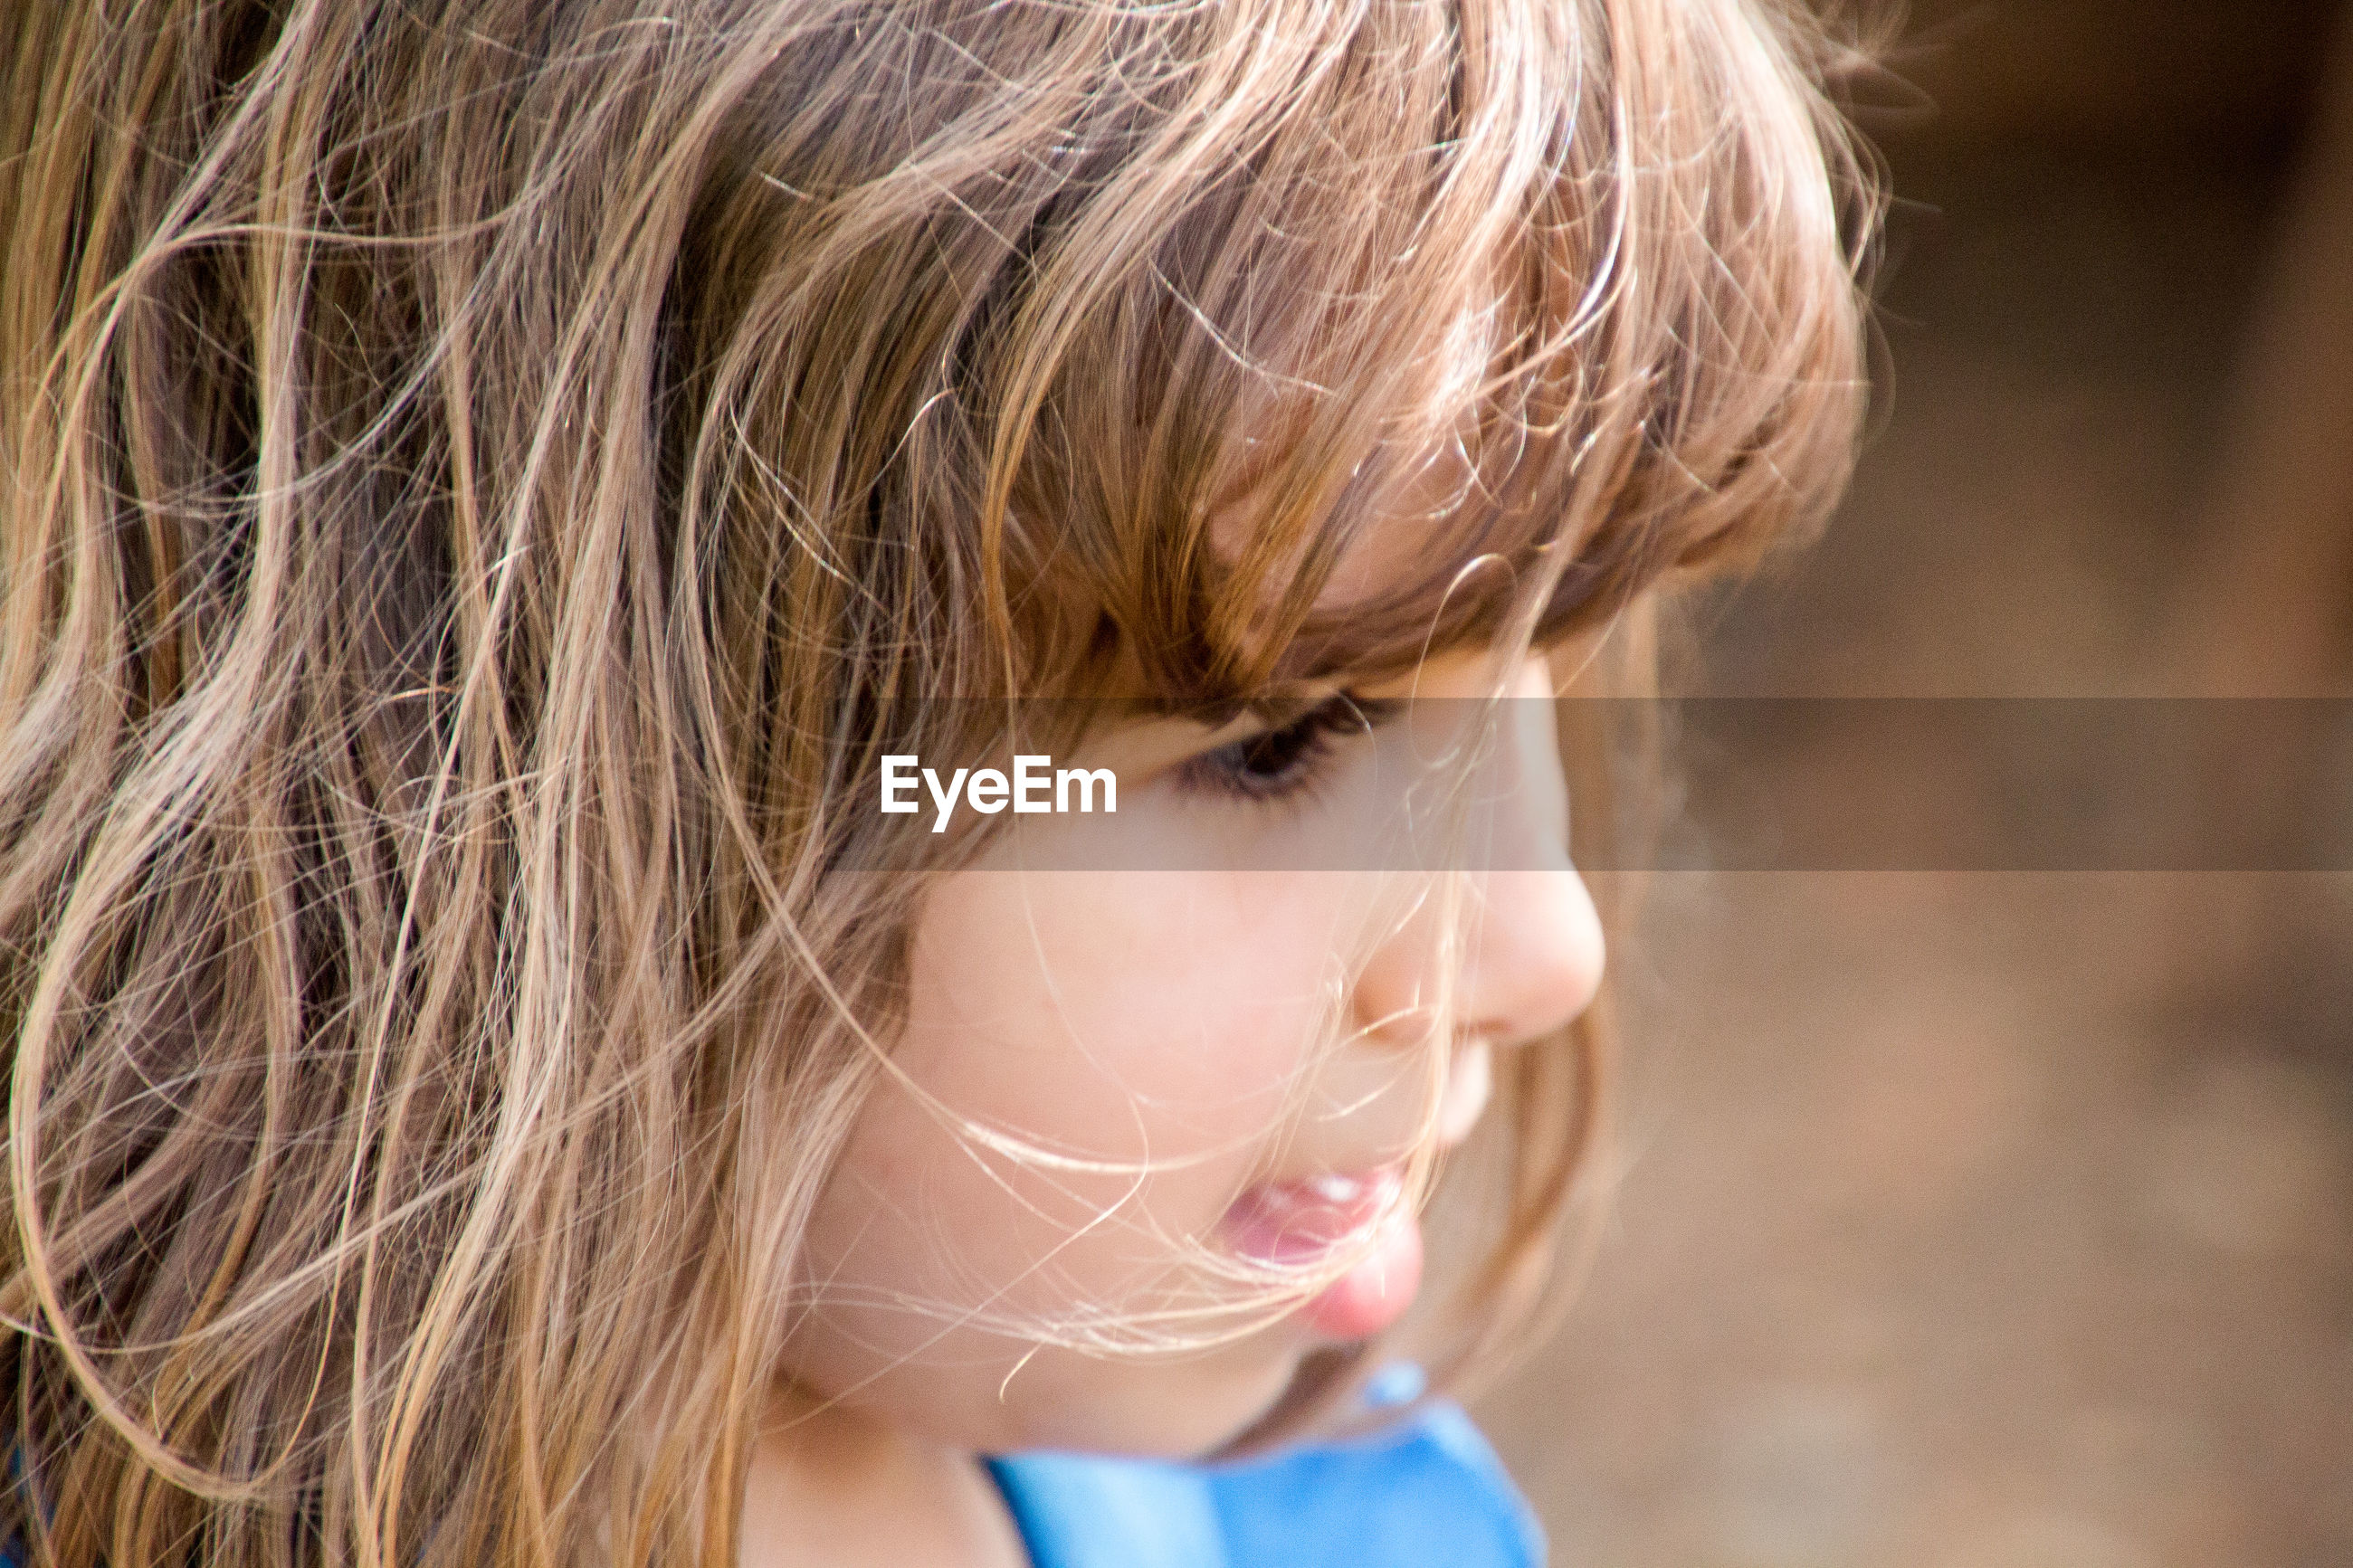 Close-up of girl looking away